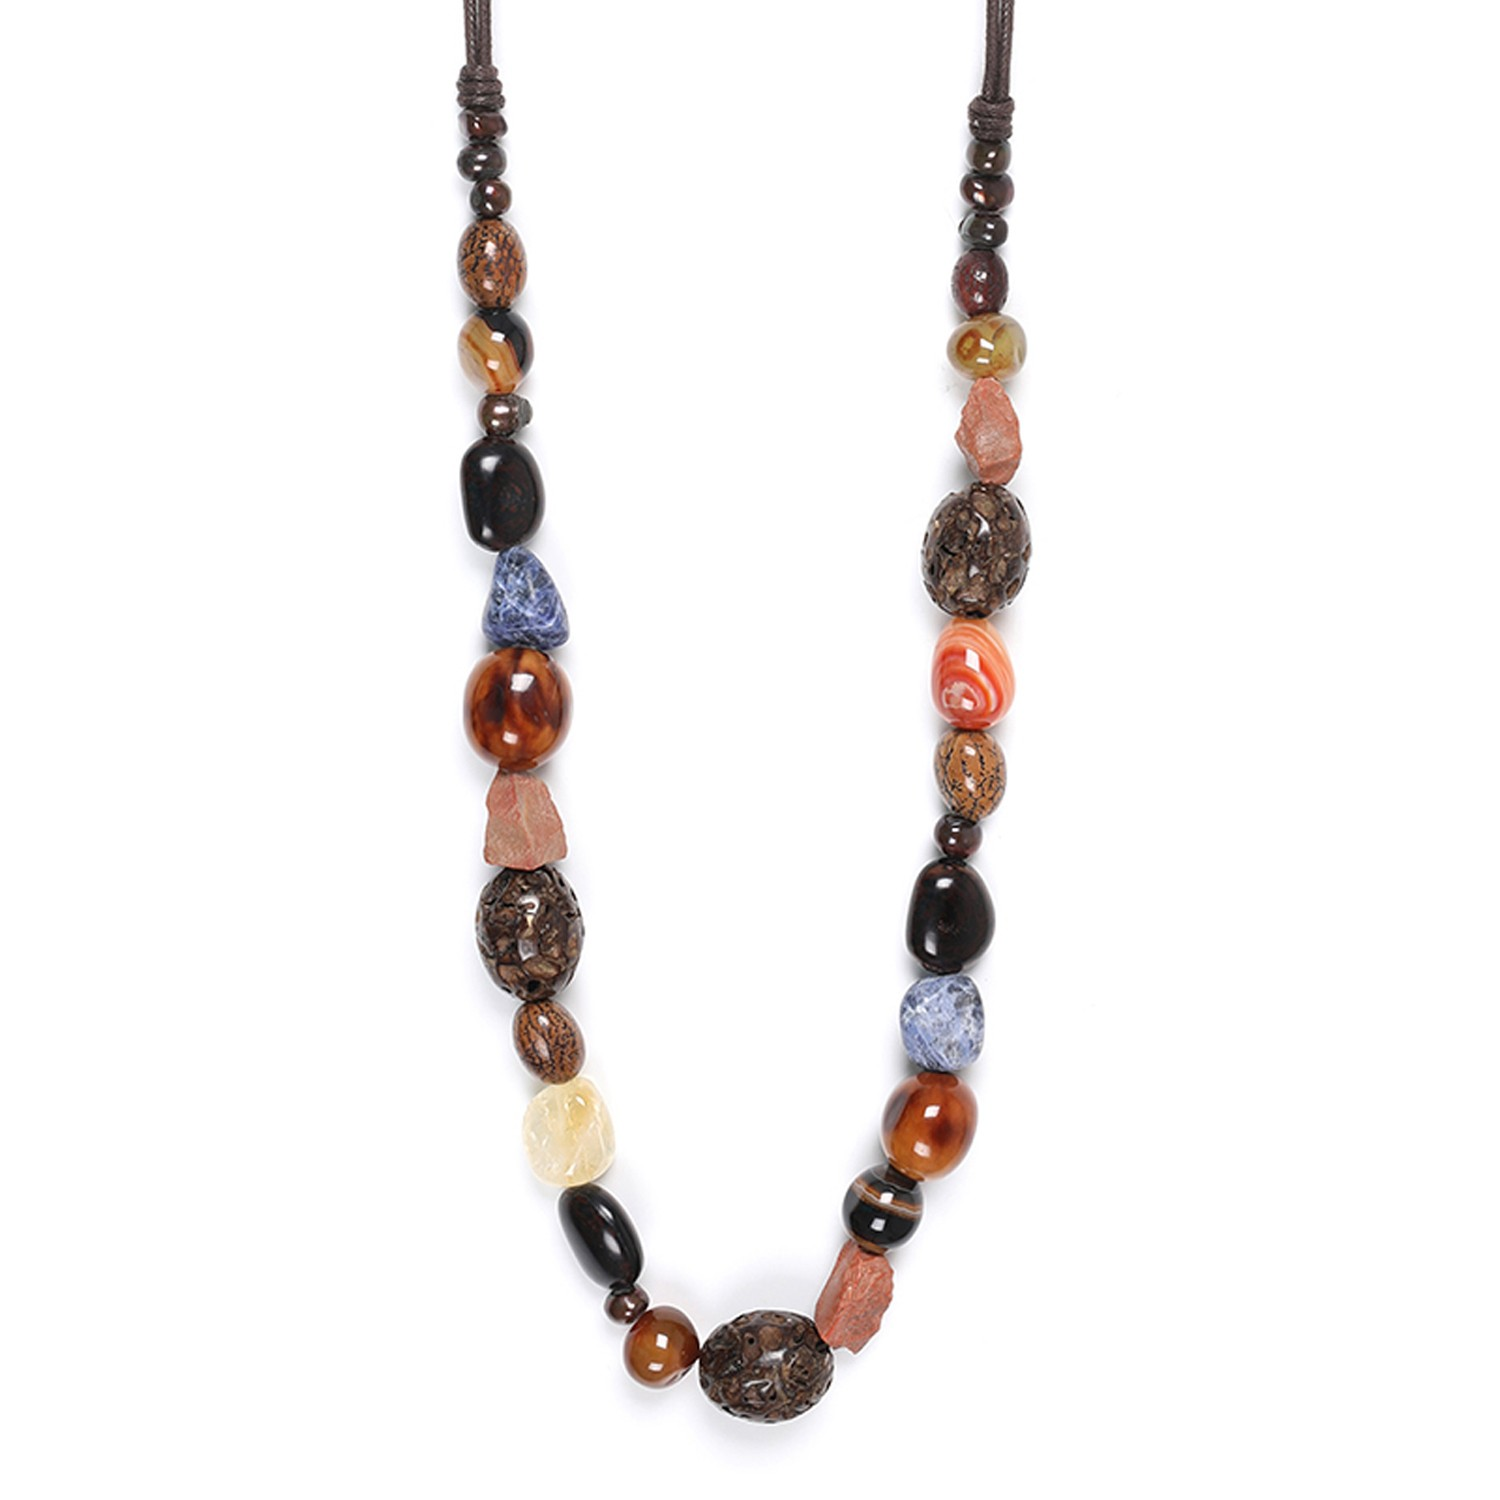 MALAWI long necklace